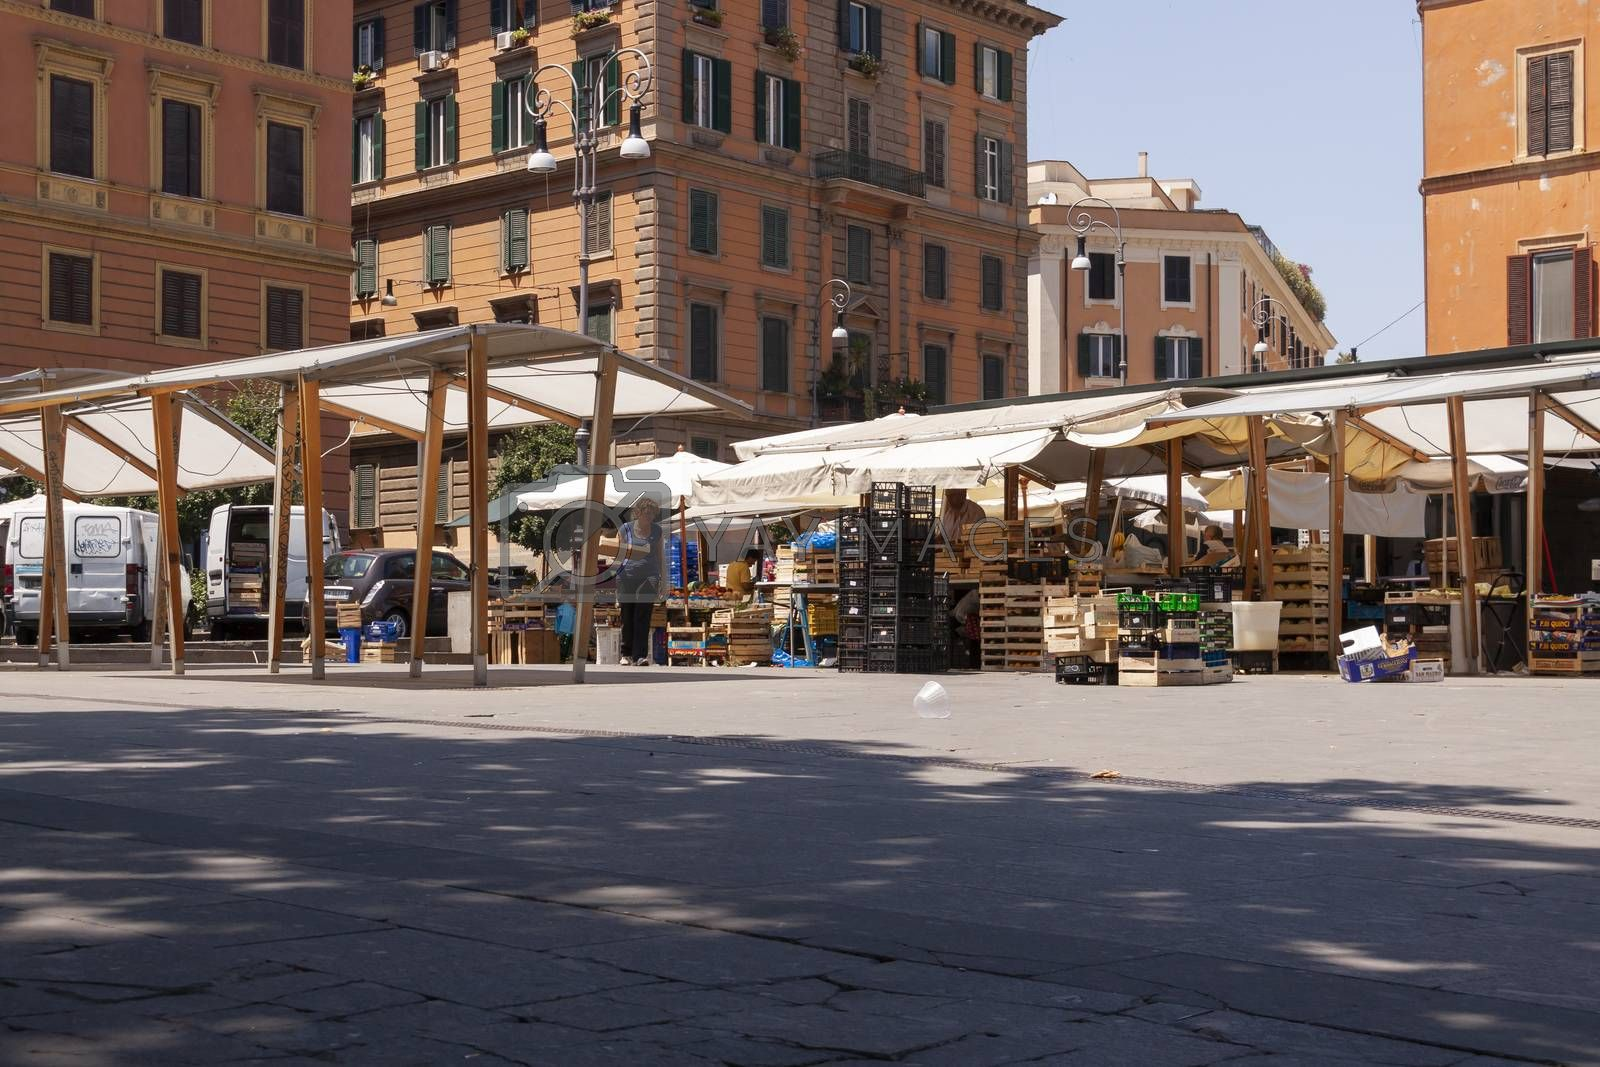 Rome, Italy - June 28, 2010: Closed fruit stalls in a street market in Rome.